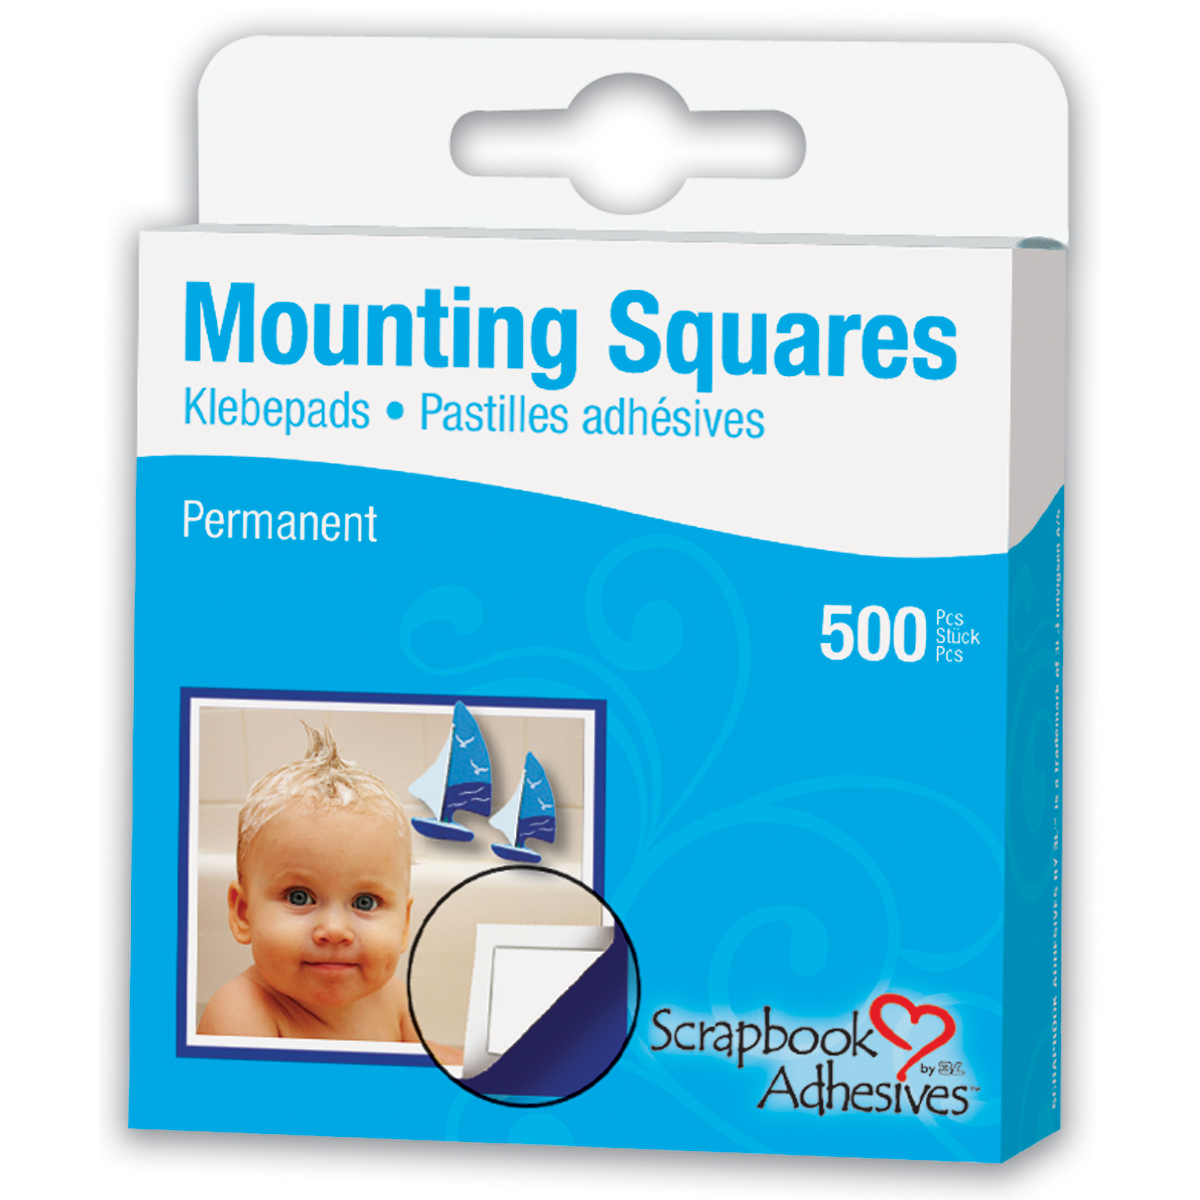 3L 1/2-Inch by 1/2-Inch Permanent Mounting Squares 500/Pkg, White Multi-Colored